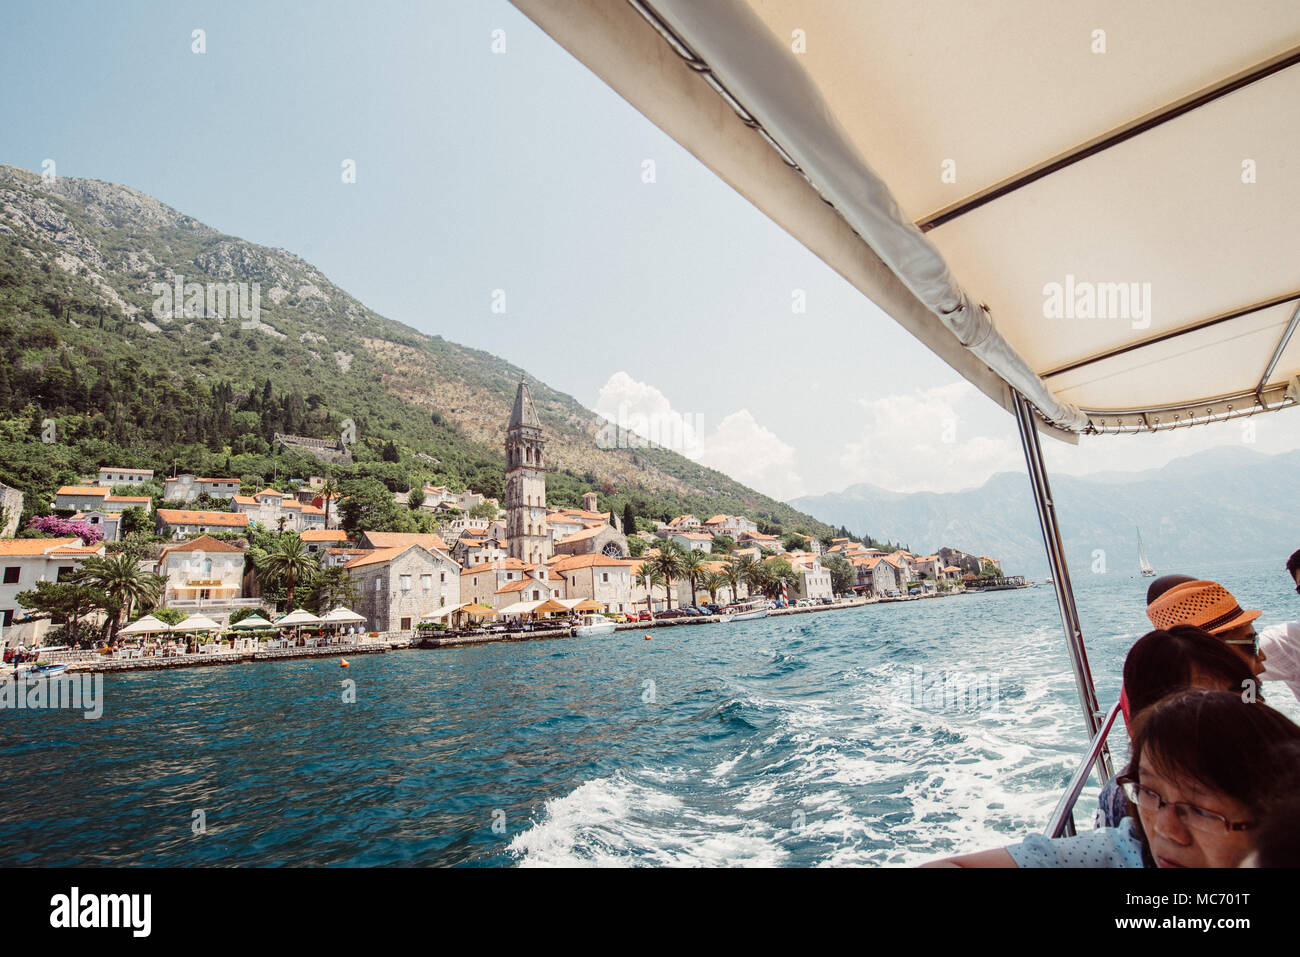 Bay of Kotor, Montenegro. The Mediterranean's only fjord. - Stock Image